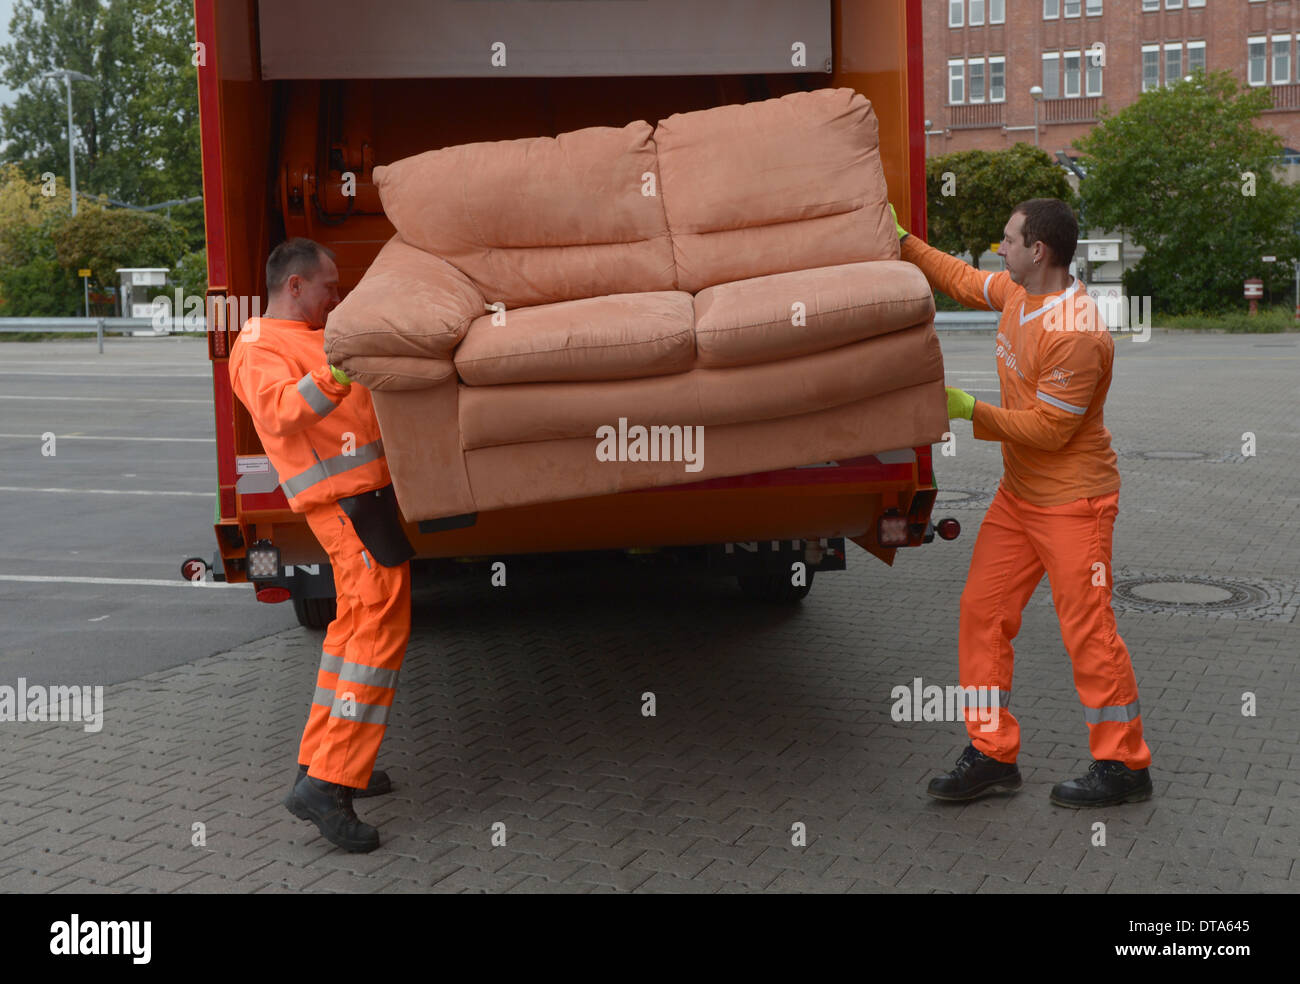 Berlin, Germany, BSR Staff Invite An Old Sofa   Stock Image